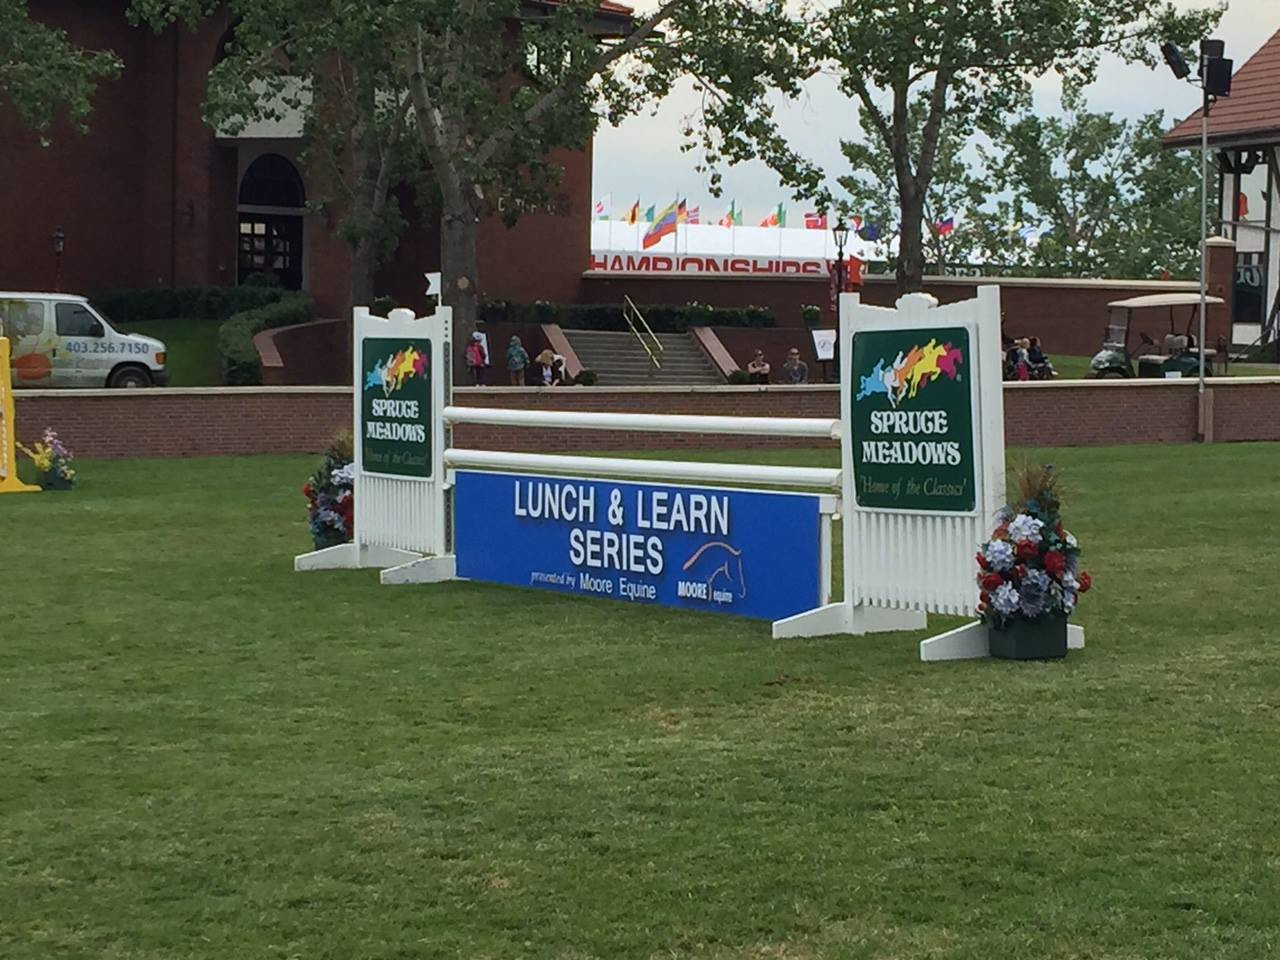 Spruce Meadows Lunch and Learn Series